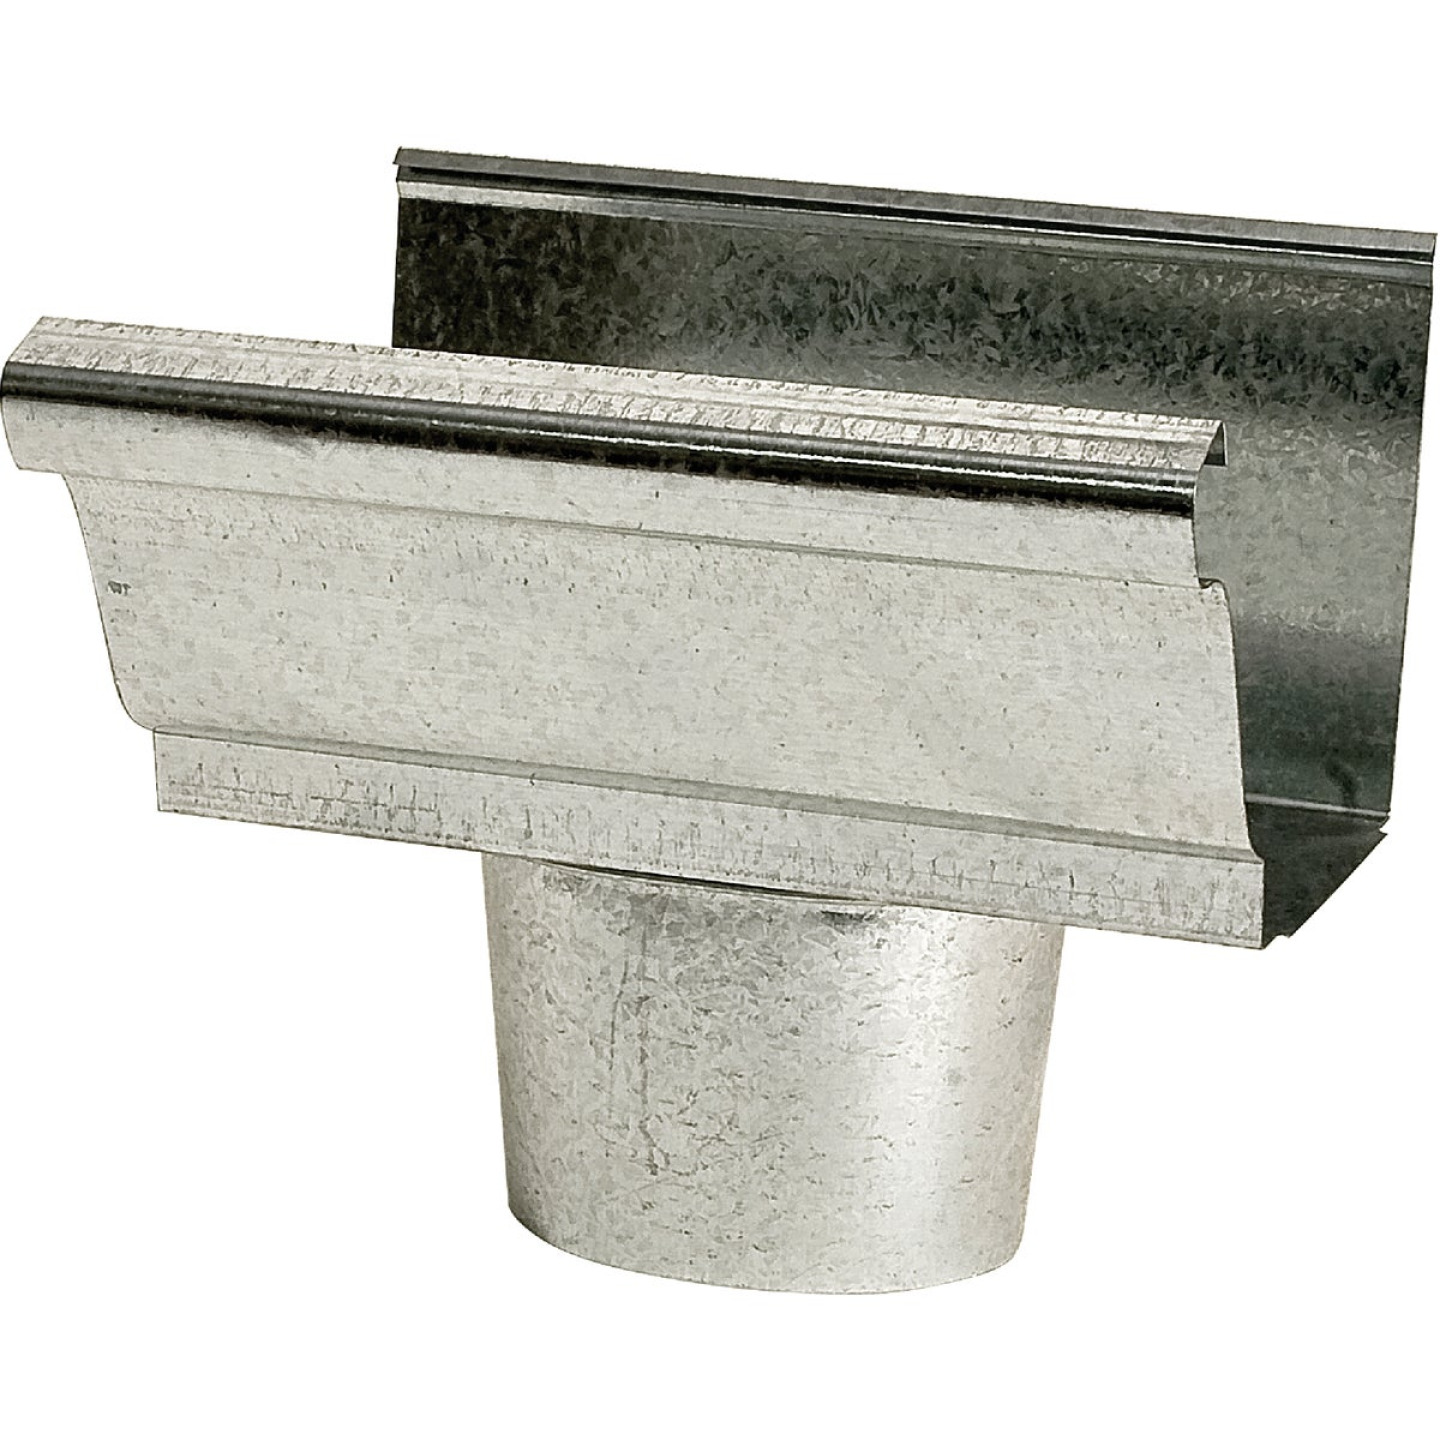 NorWesco 4 In. K Style Steel Oval Gutter Drop Outlet Image 1